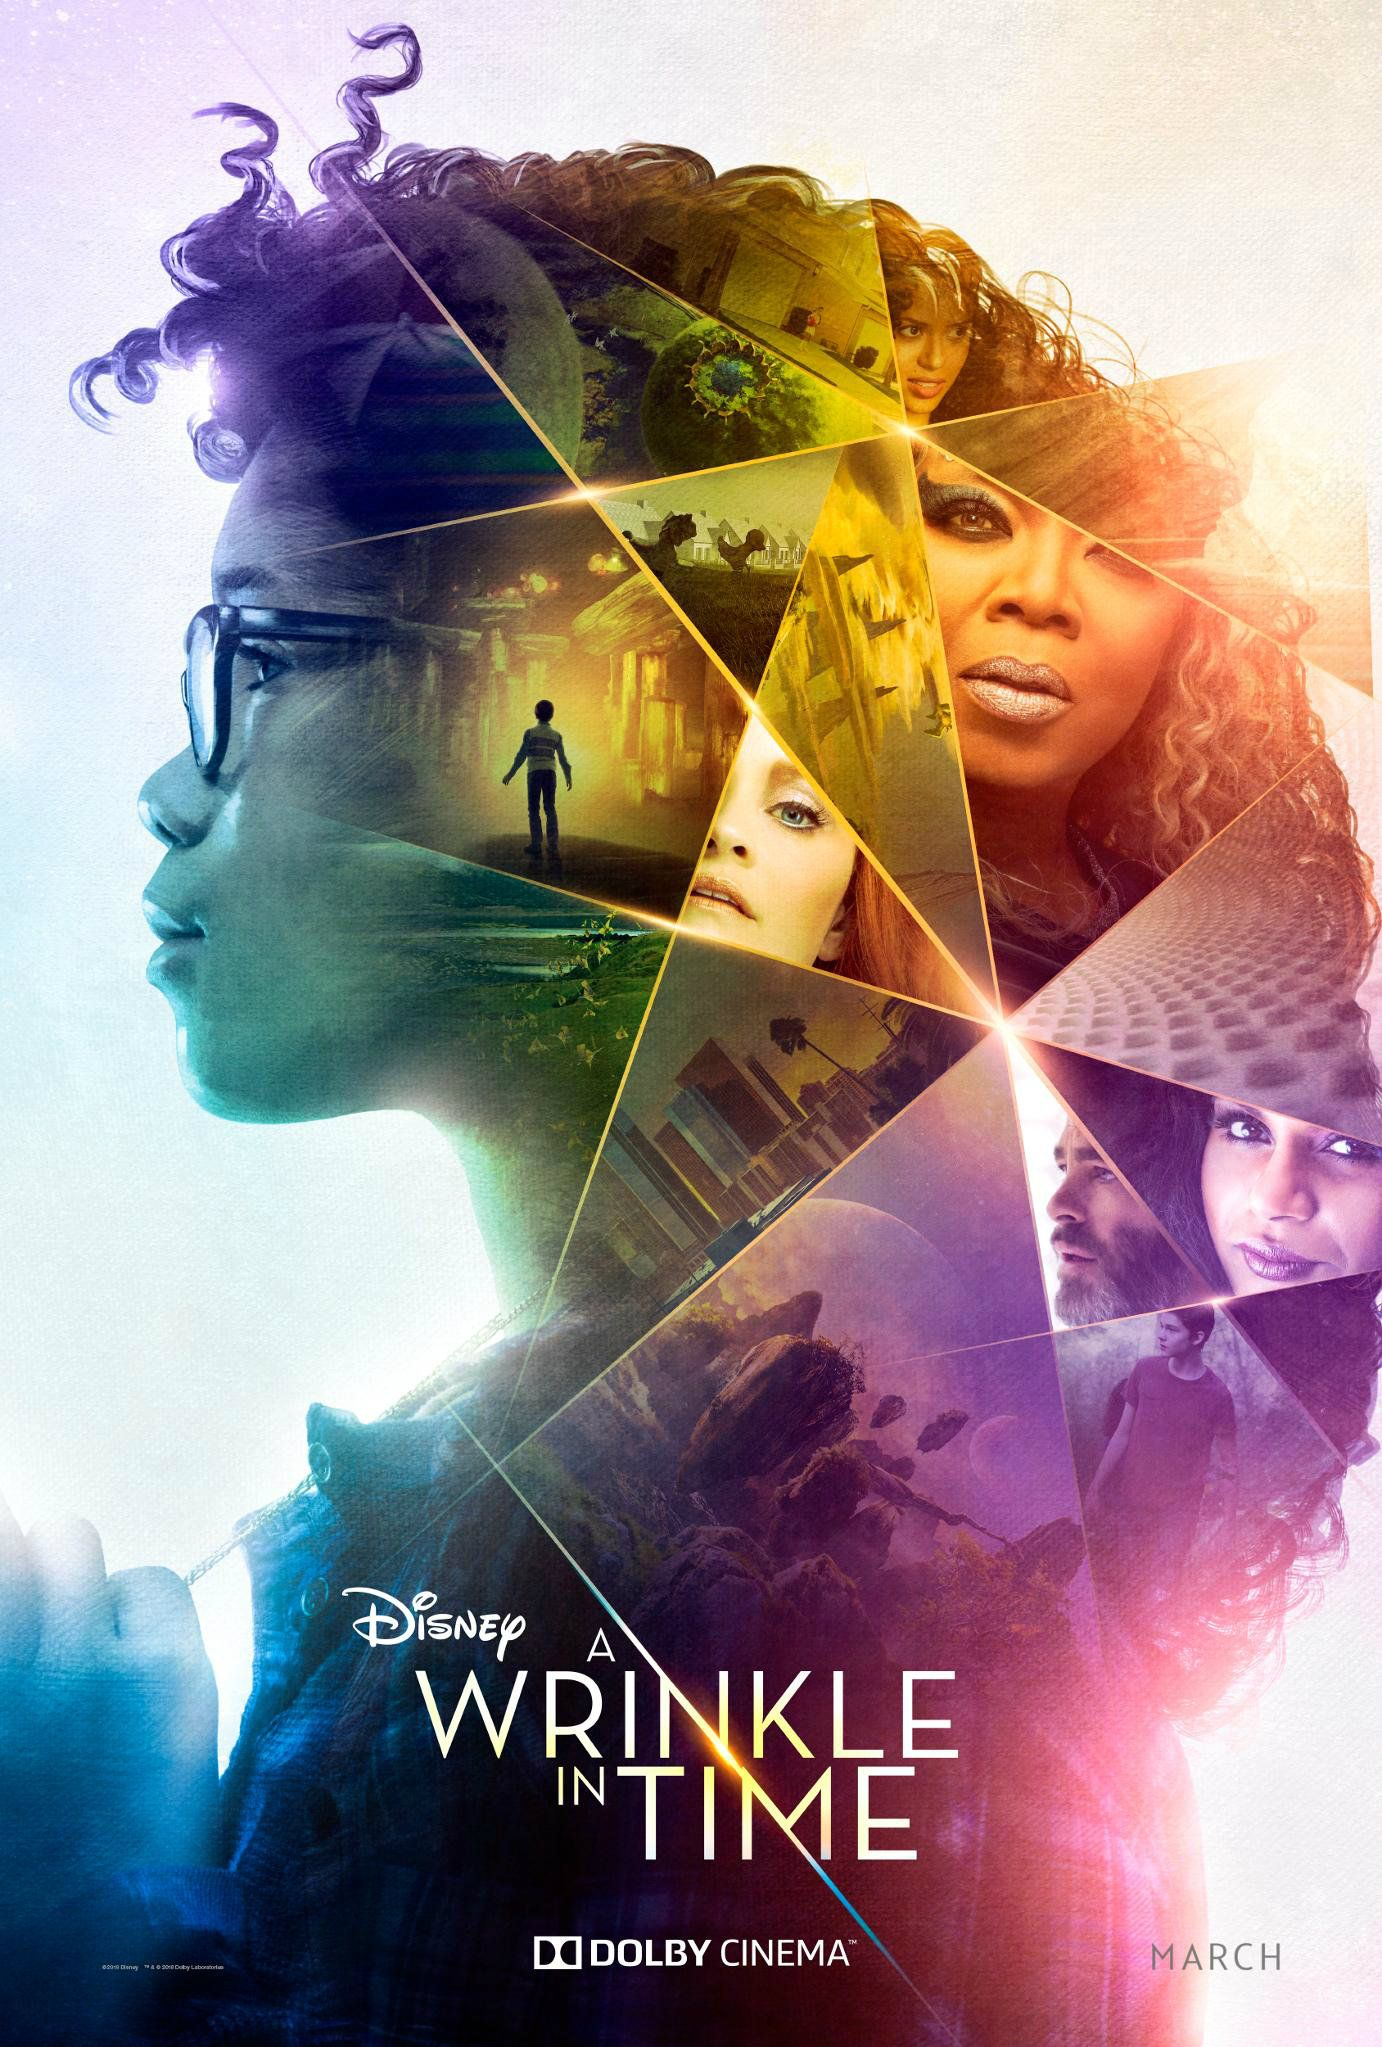 New poster for A Wrinkle in Time